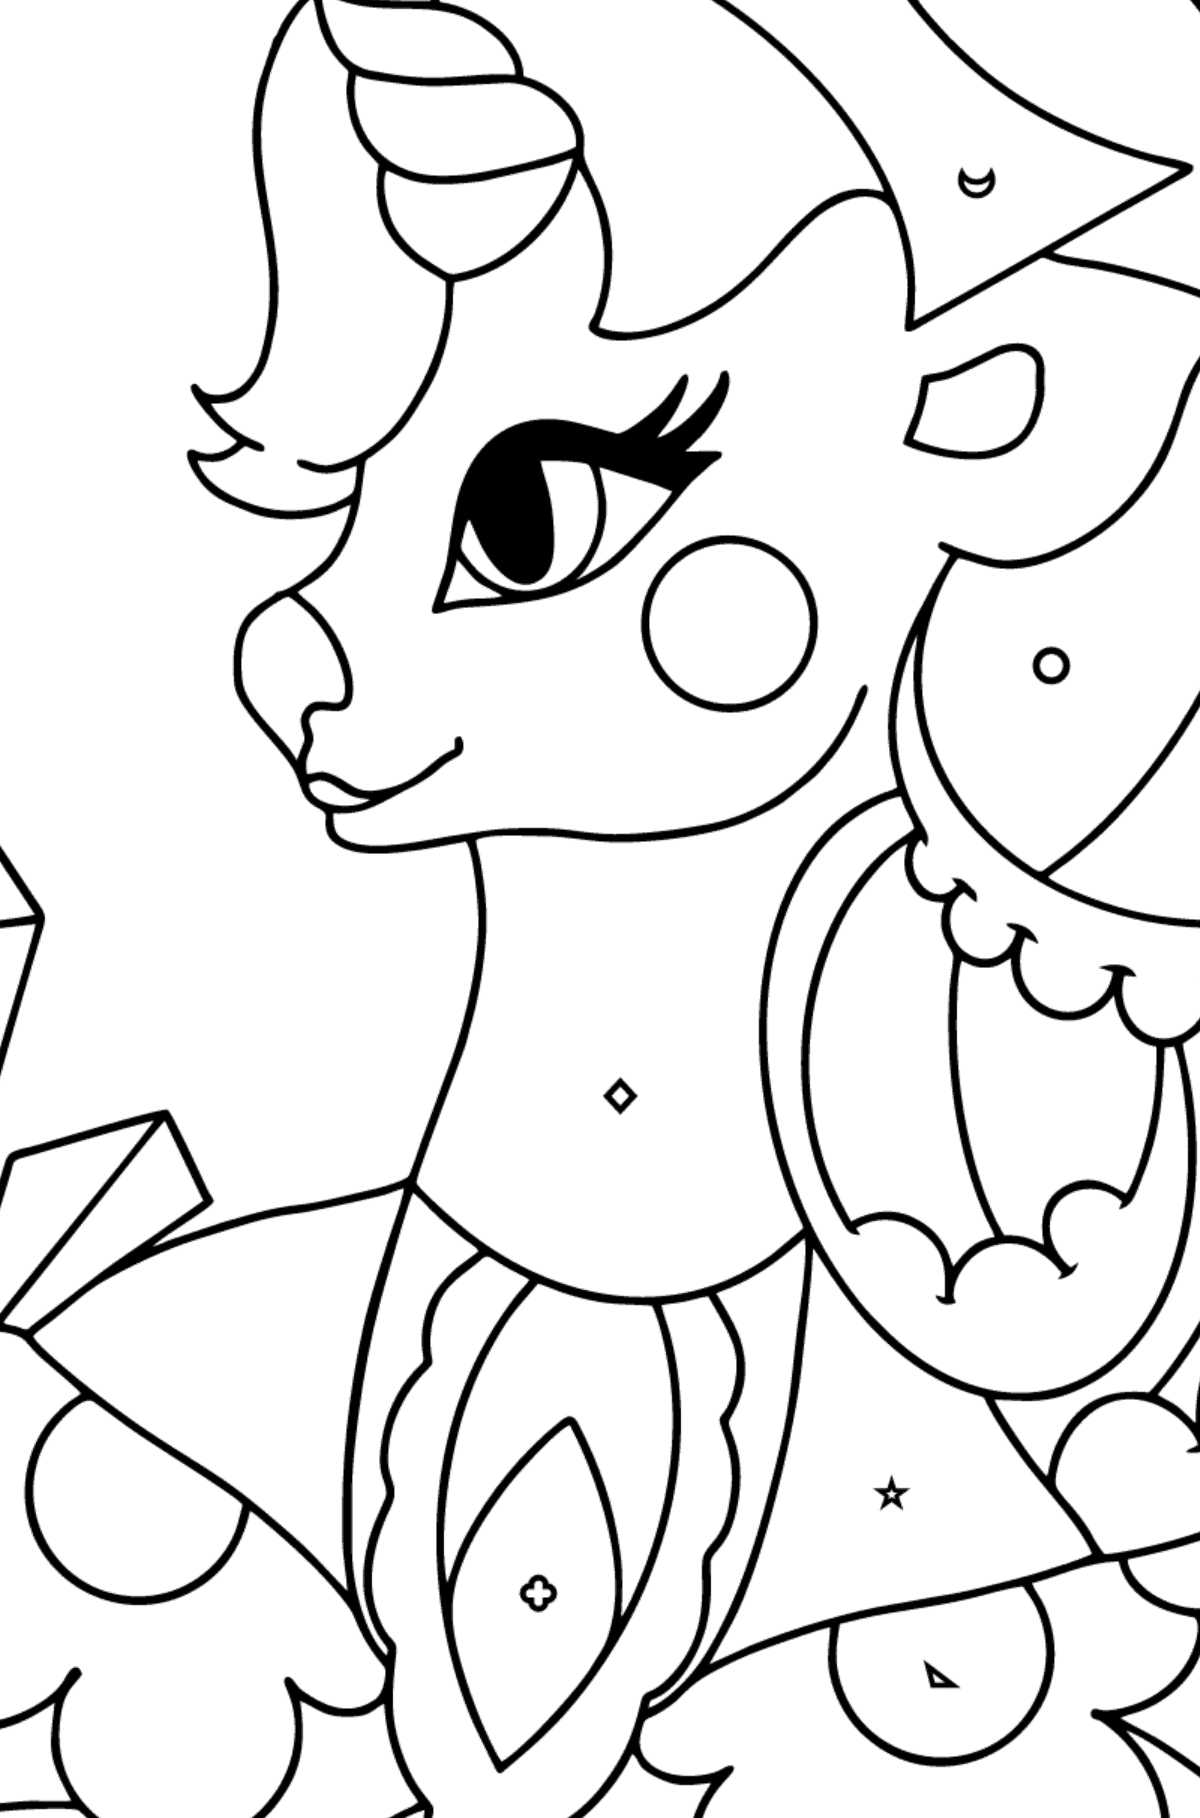 Simple Coloring Page - A Unicorn Queen for Children  - Color by Geometric Shapes